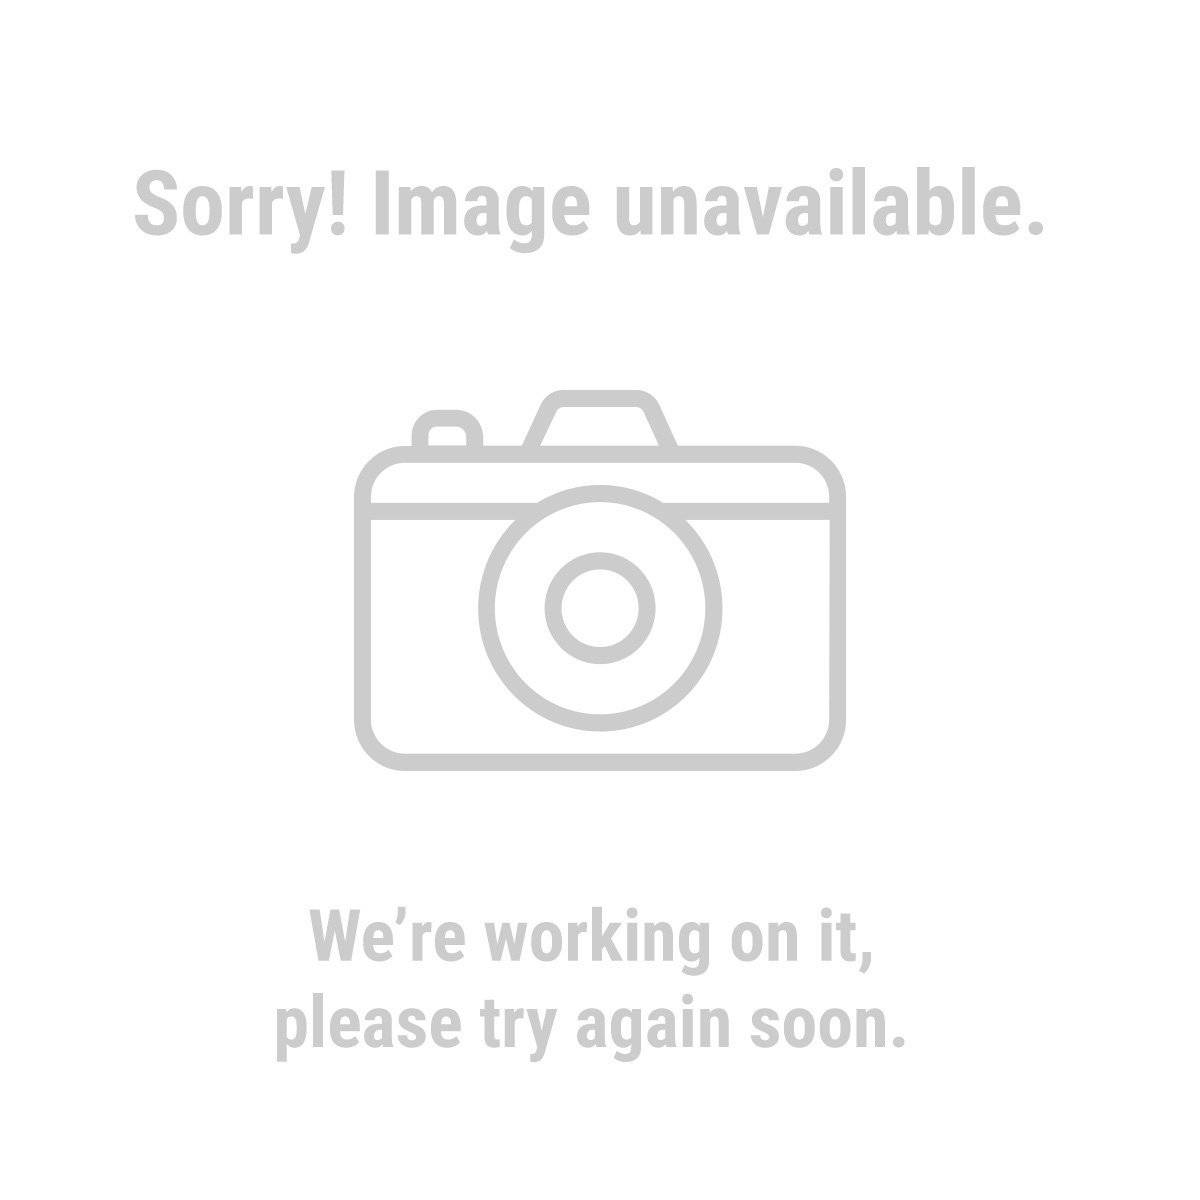 Storehouse 62363 40 Pc Hose Clamp Assortment